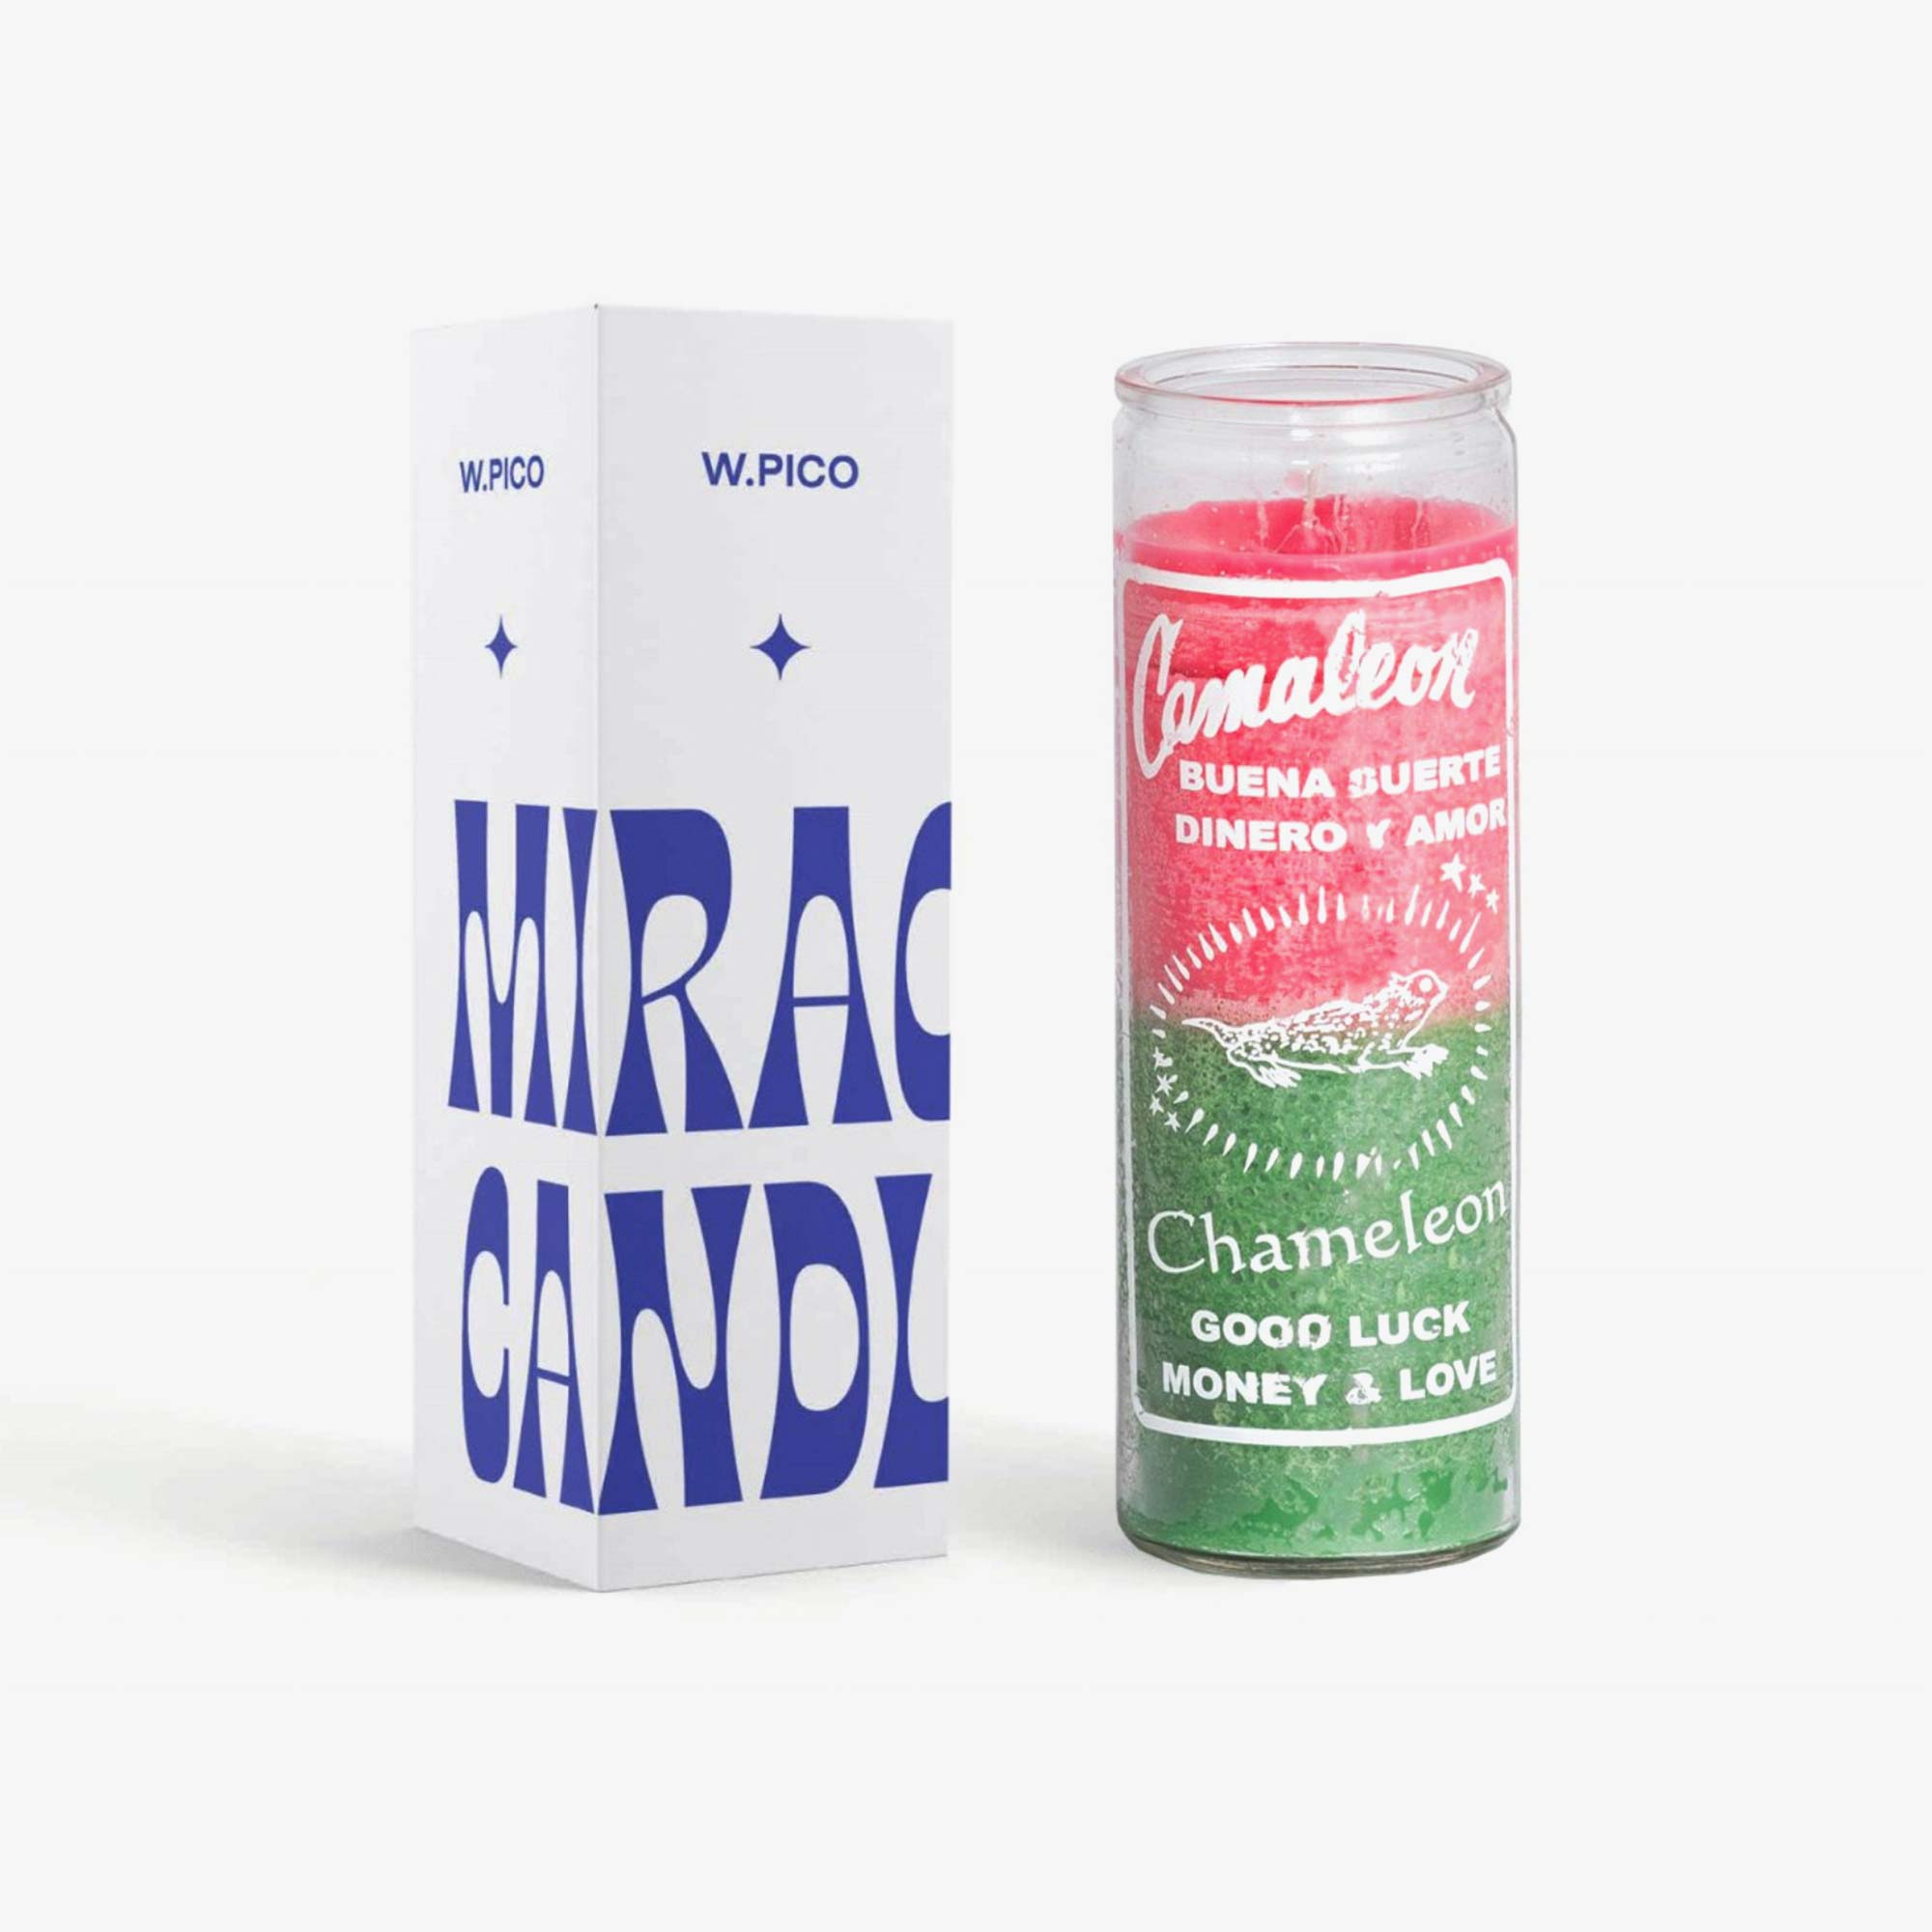 W. Pico Miracle Candles - Chameleon 1